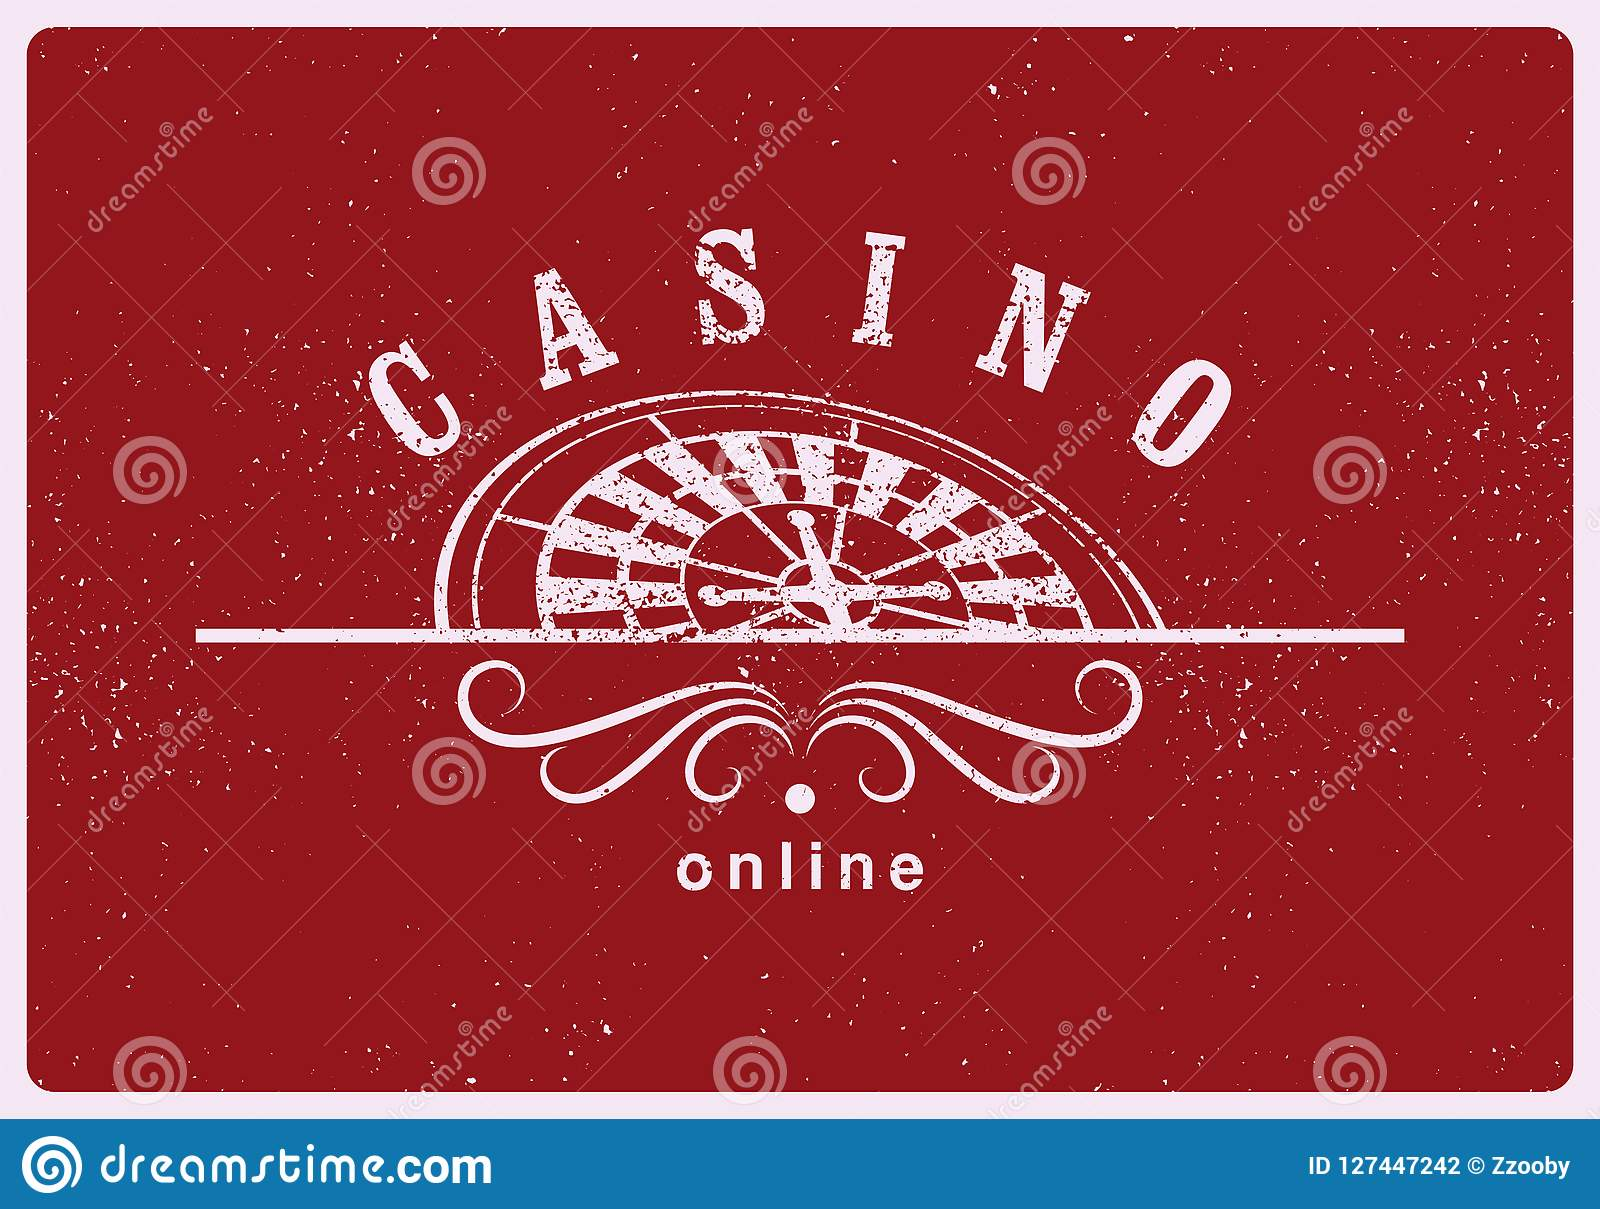 Casino typographical vintage grunge style poster with roulette wheel. Casino label, logo, badge, emblem, sign. Retro vector illust